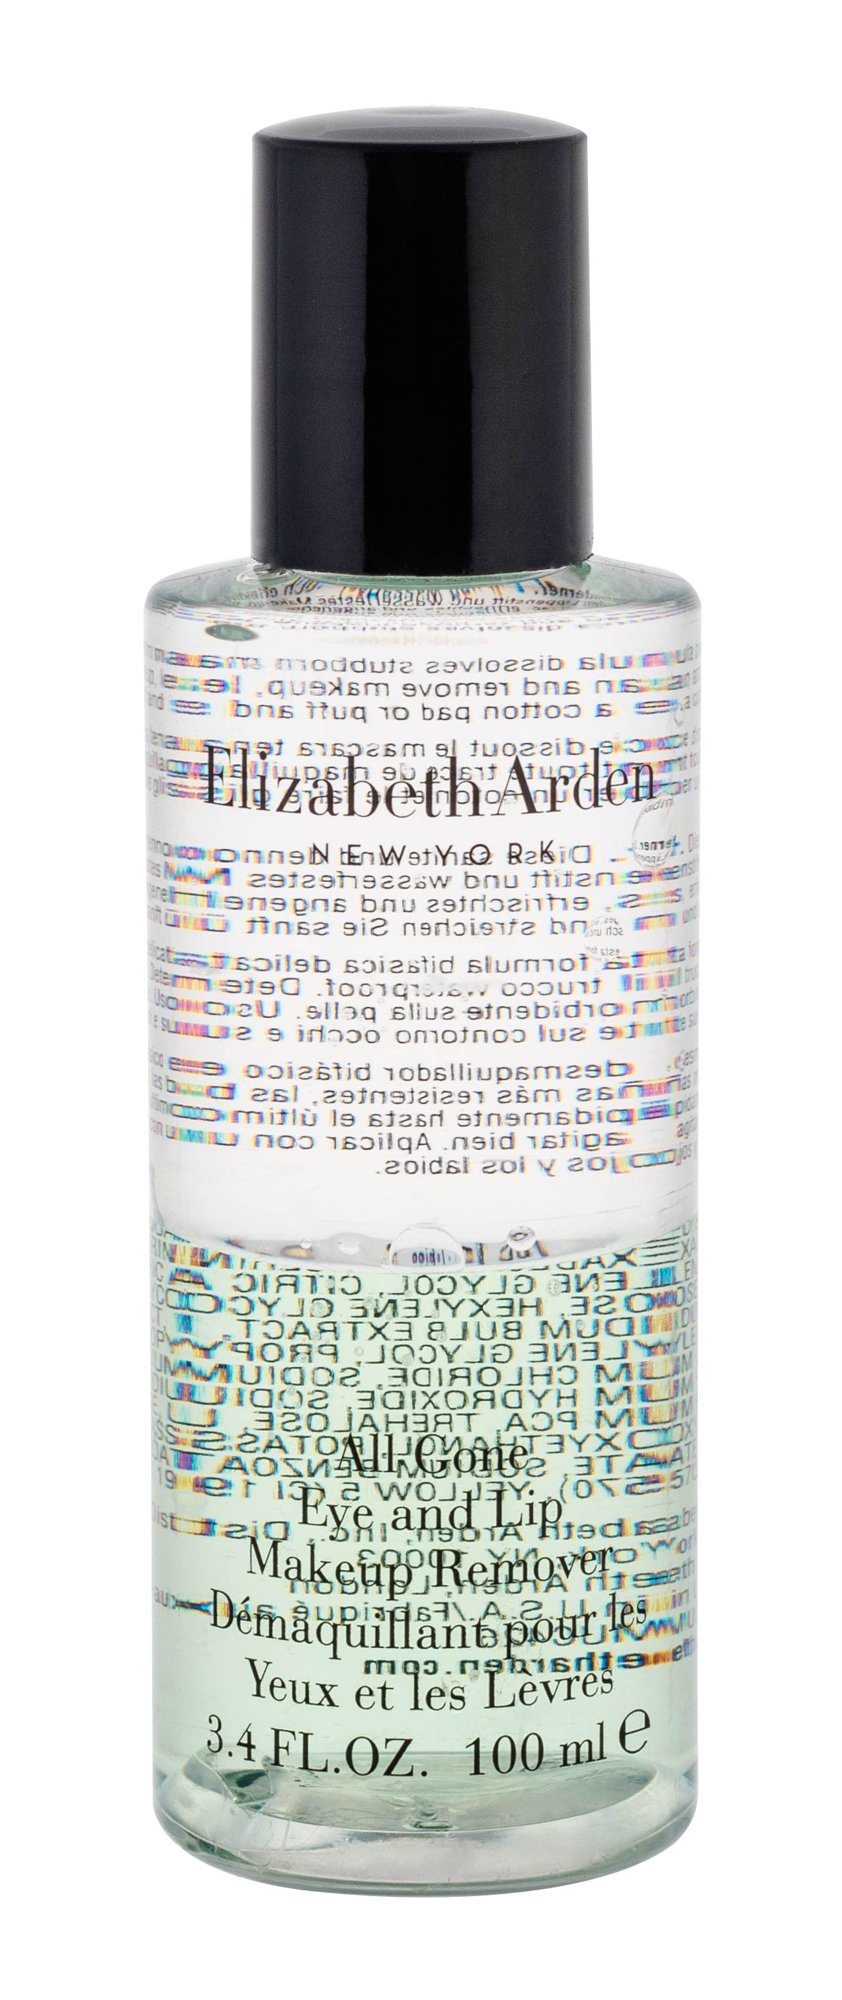 Elizabeth Arden All Gone  Odličovač očí, W, 100 ml